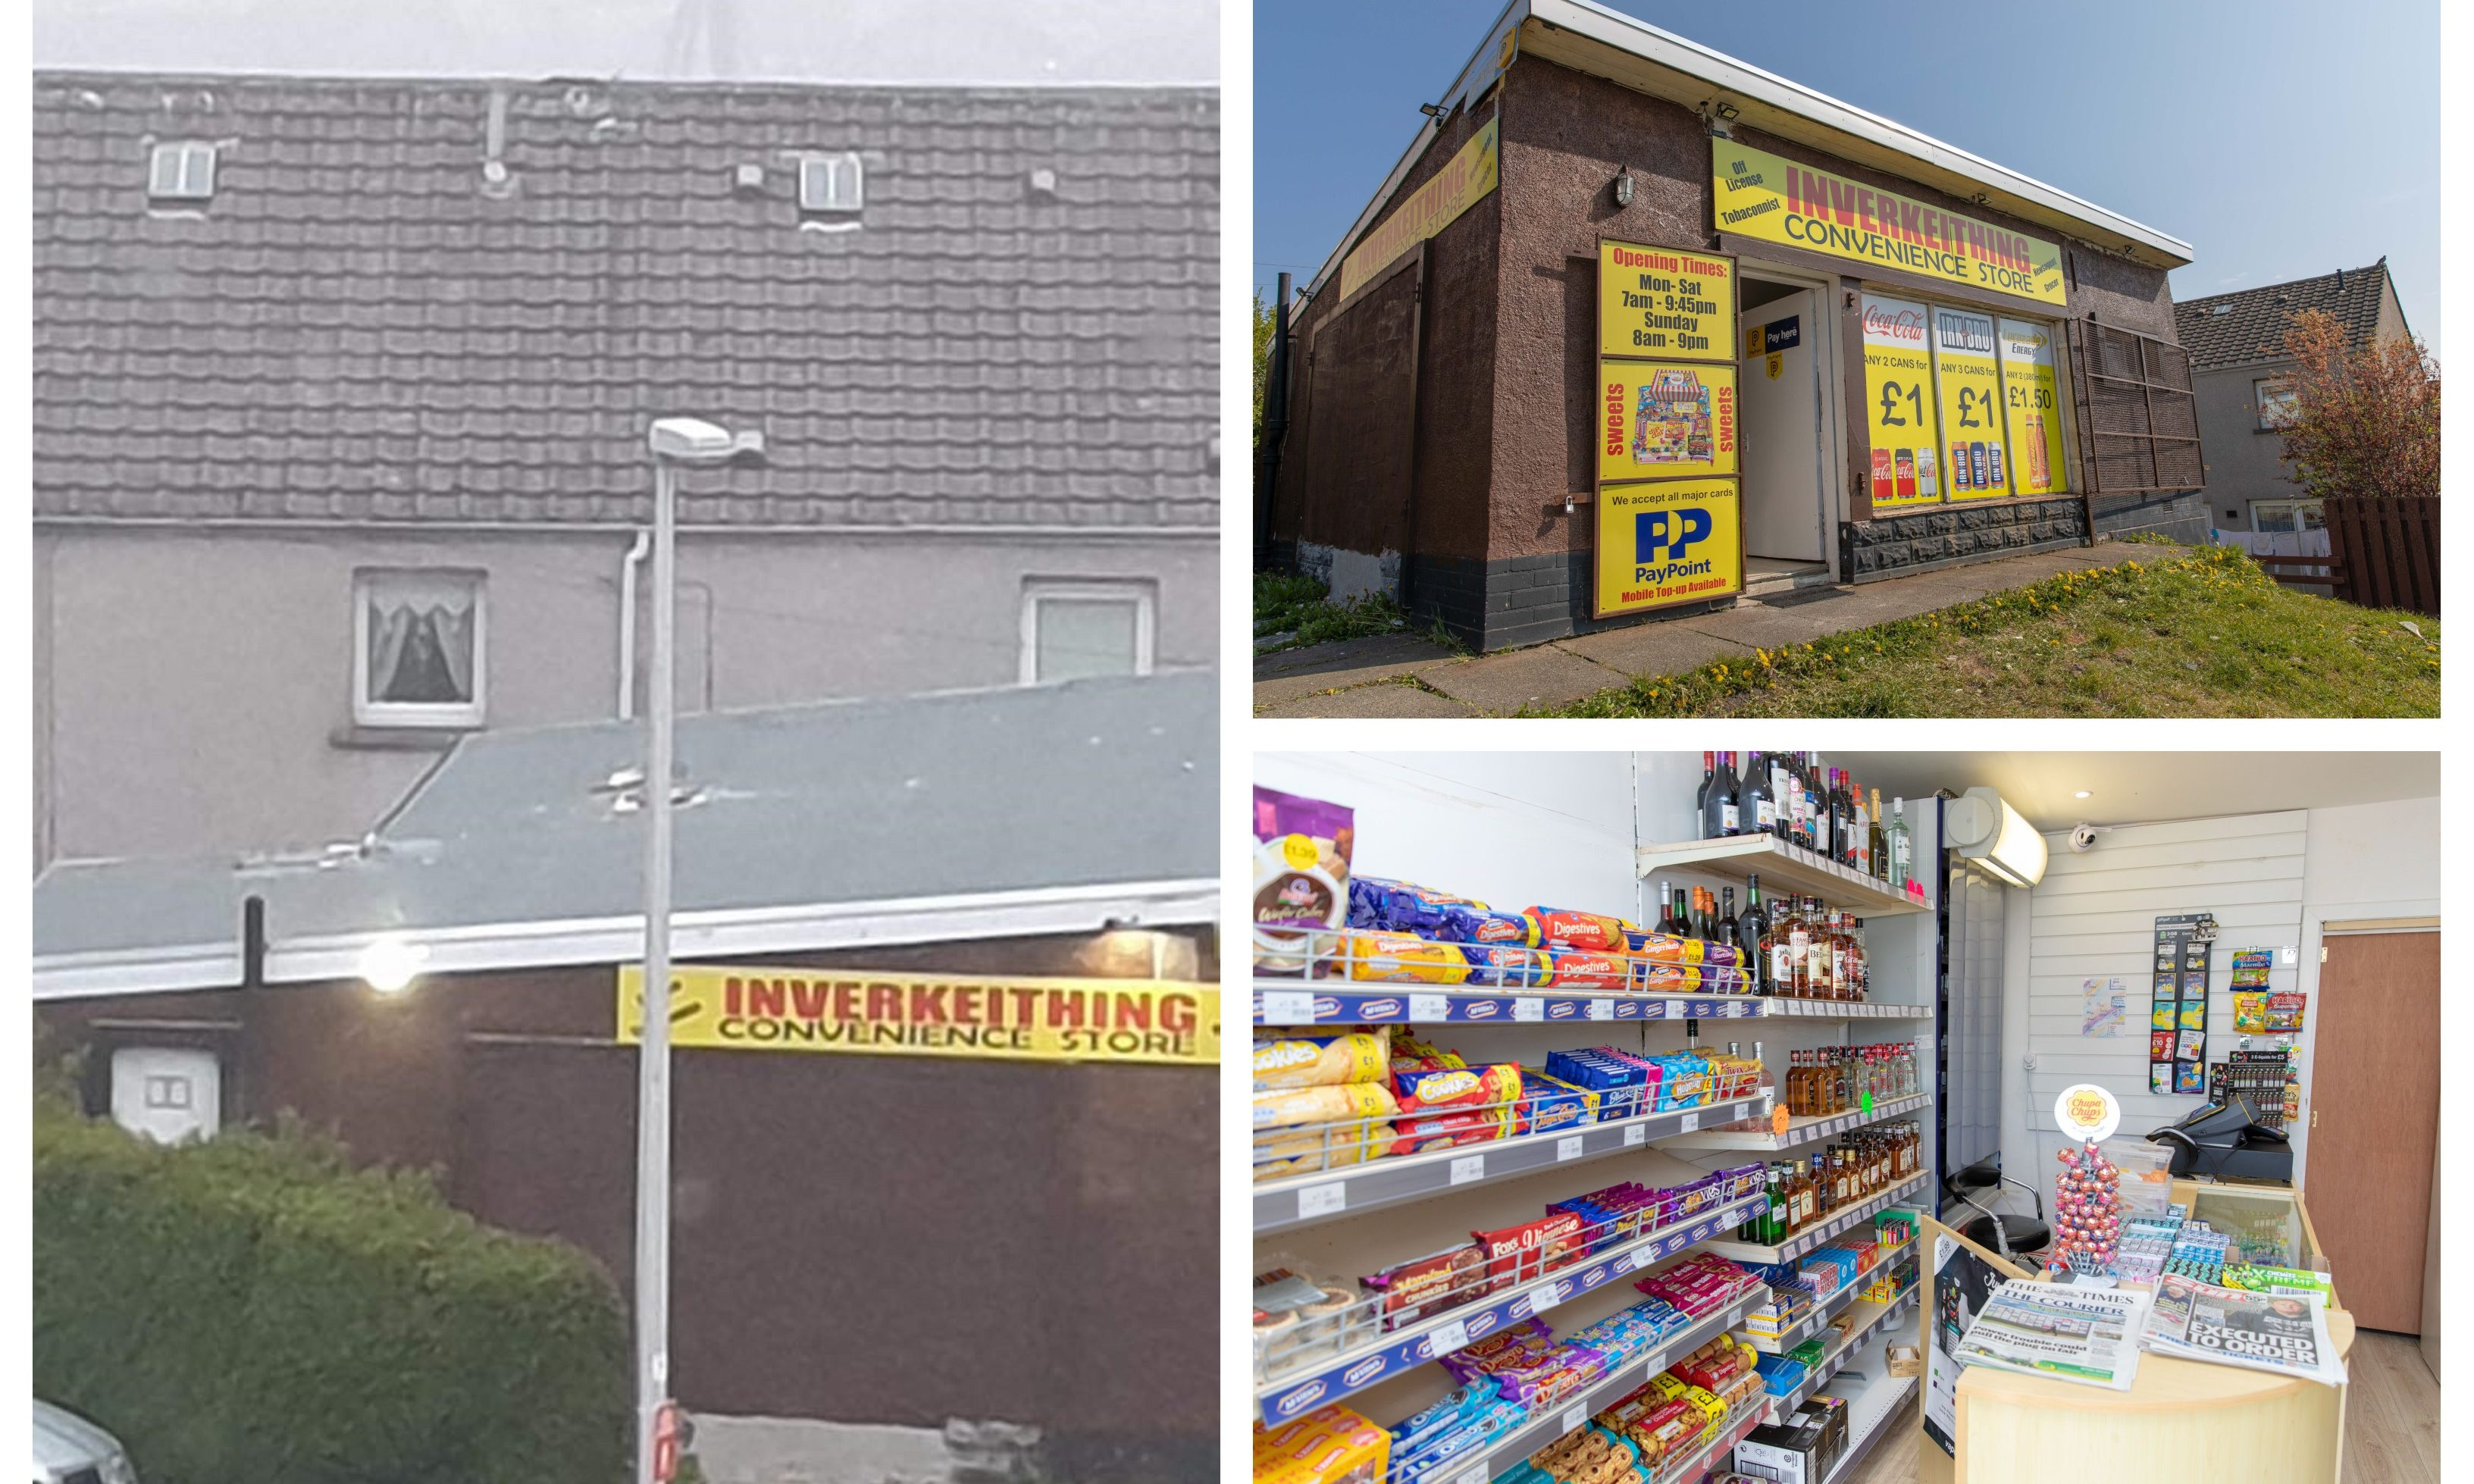 Inverkeithing Convenience Store, which was broken into on Thursday morning.